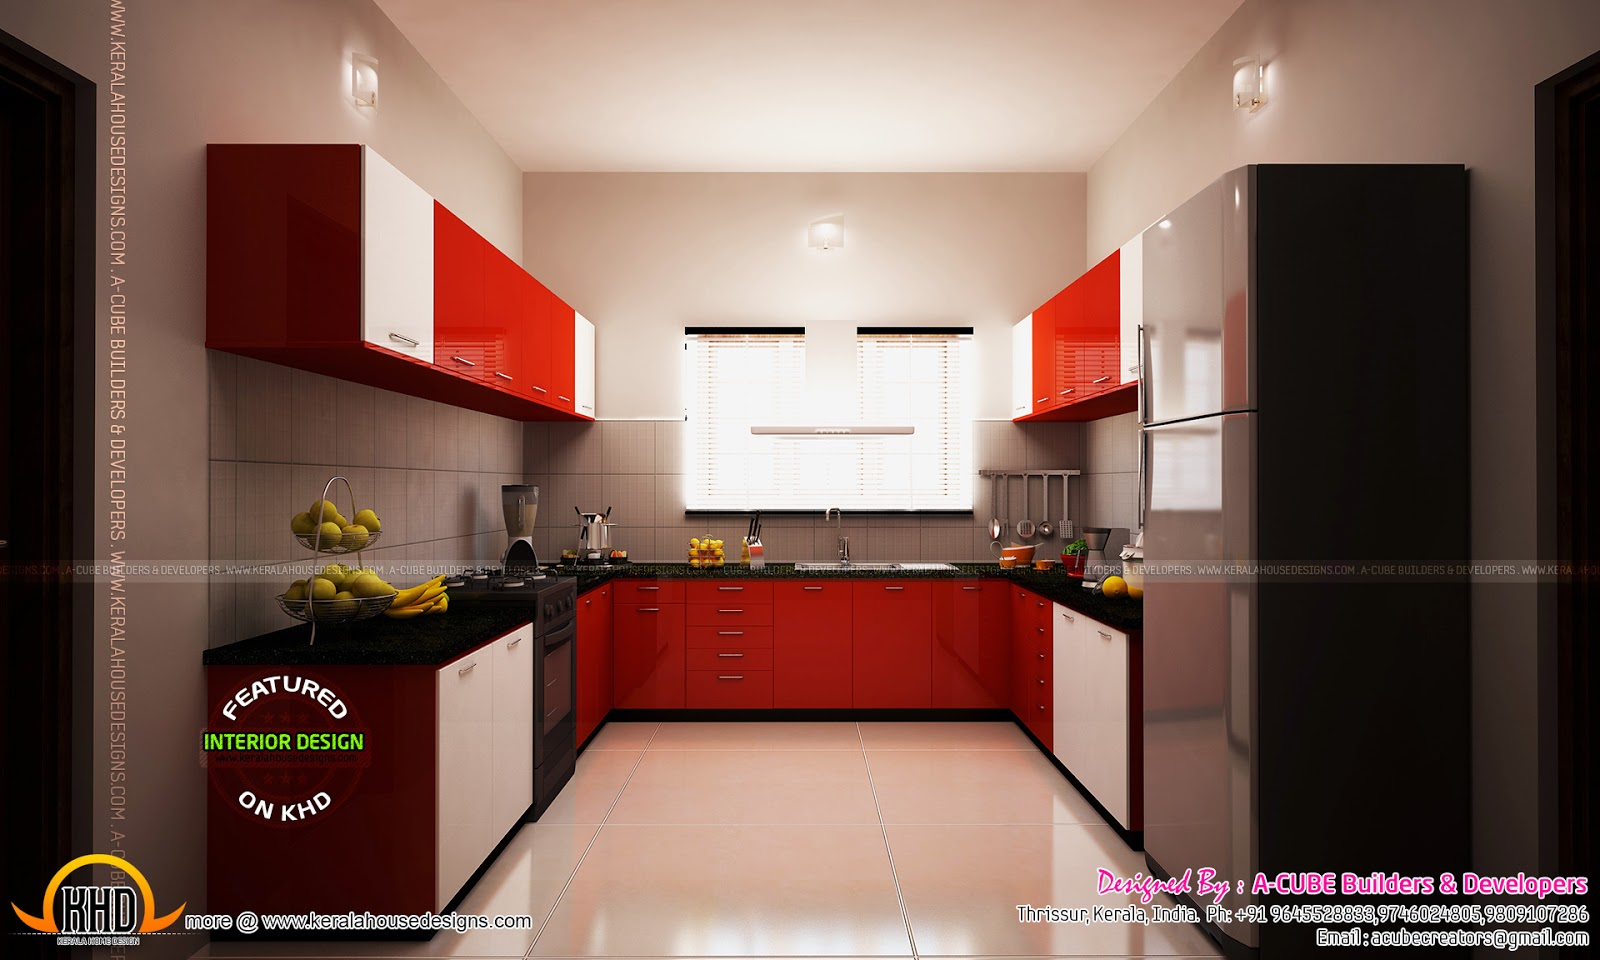 Modern kerala interior designs kerala home design and for Kerala interior designs